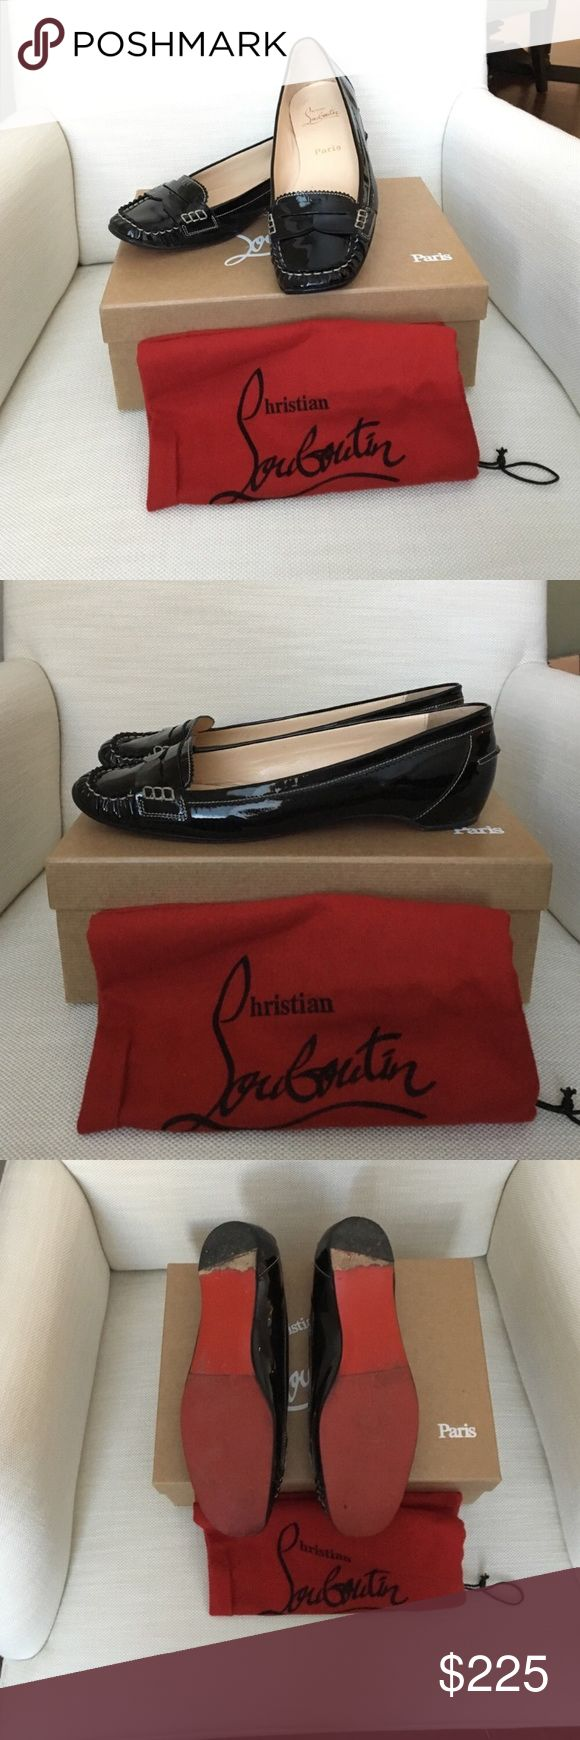 Christian Louboutin Penny girl flats Authentic patent leather Christian Louboutin Penny Girl flats in amazing condition. Vibran anti slip sole has been added to half of the sole(see third picture for details) Box and dust cover included. Euro size 40.5 or US 10 1/2.  Negotiation only happens through the offer button. Lowball offers will be ignored. NO TRADES Christian Louboutin Shoes Flats & Loafers